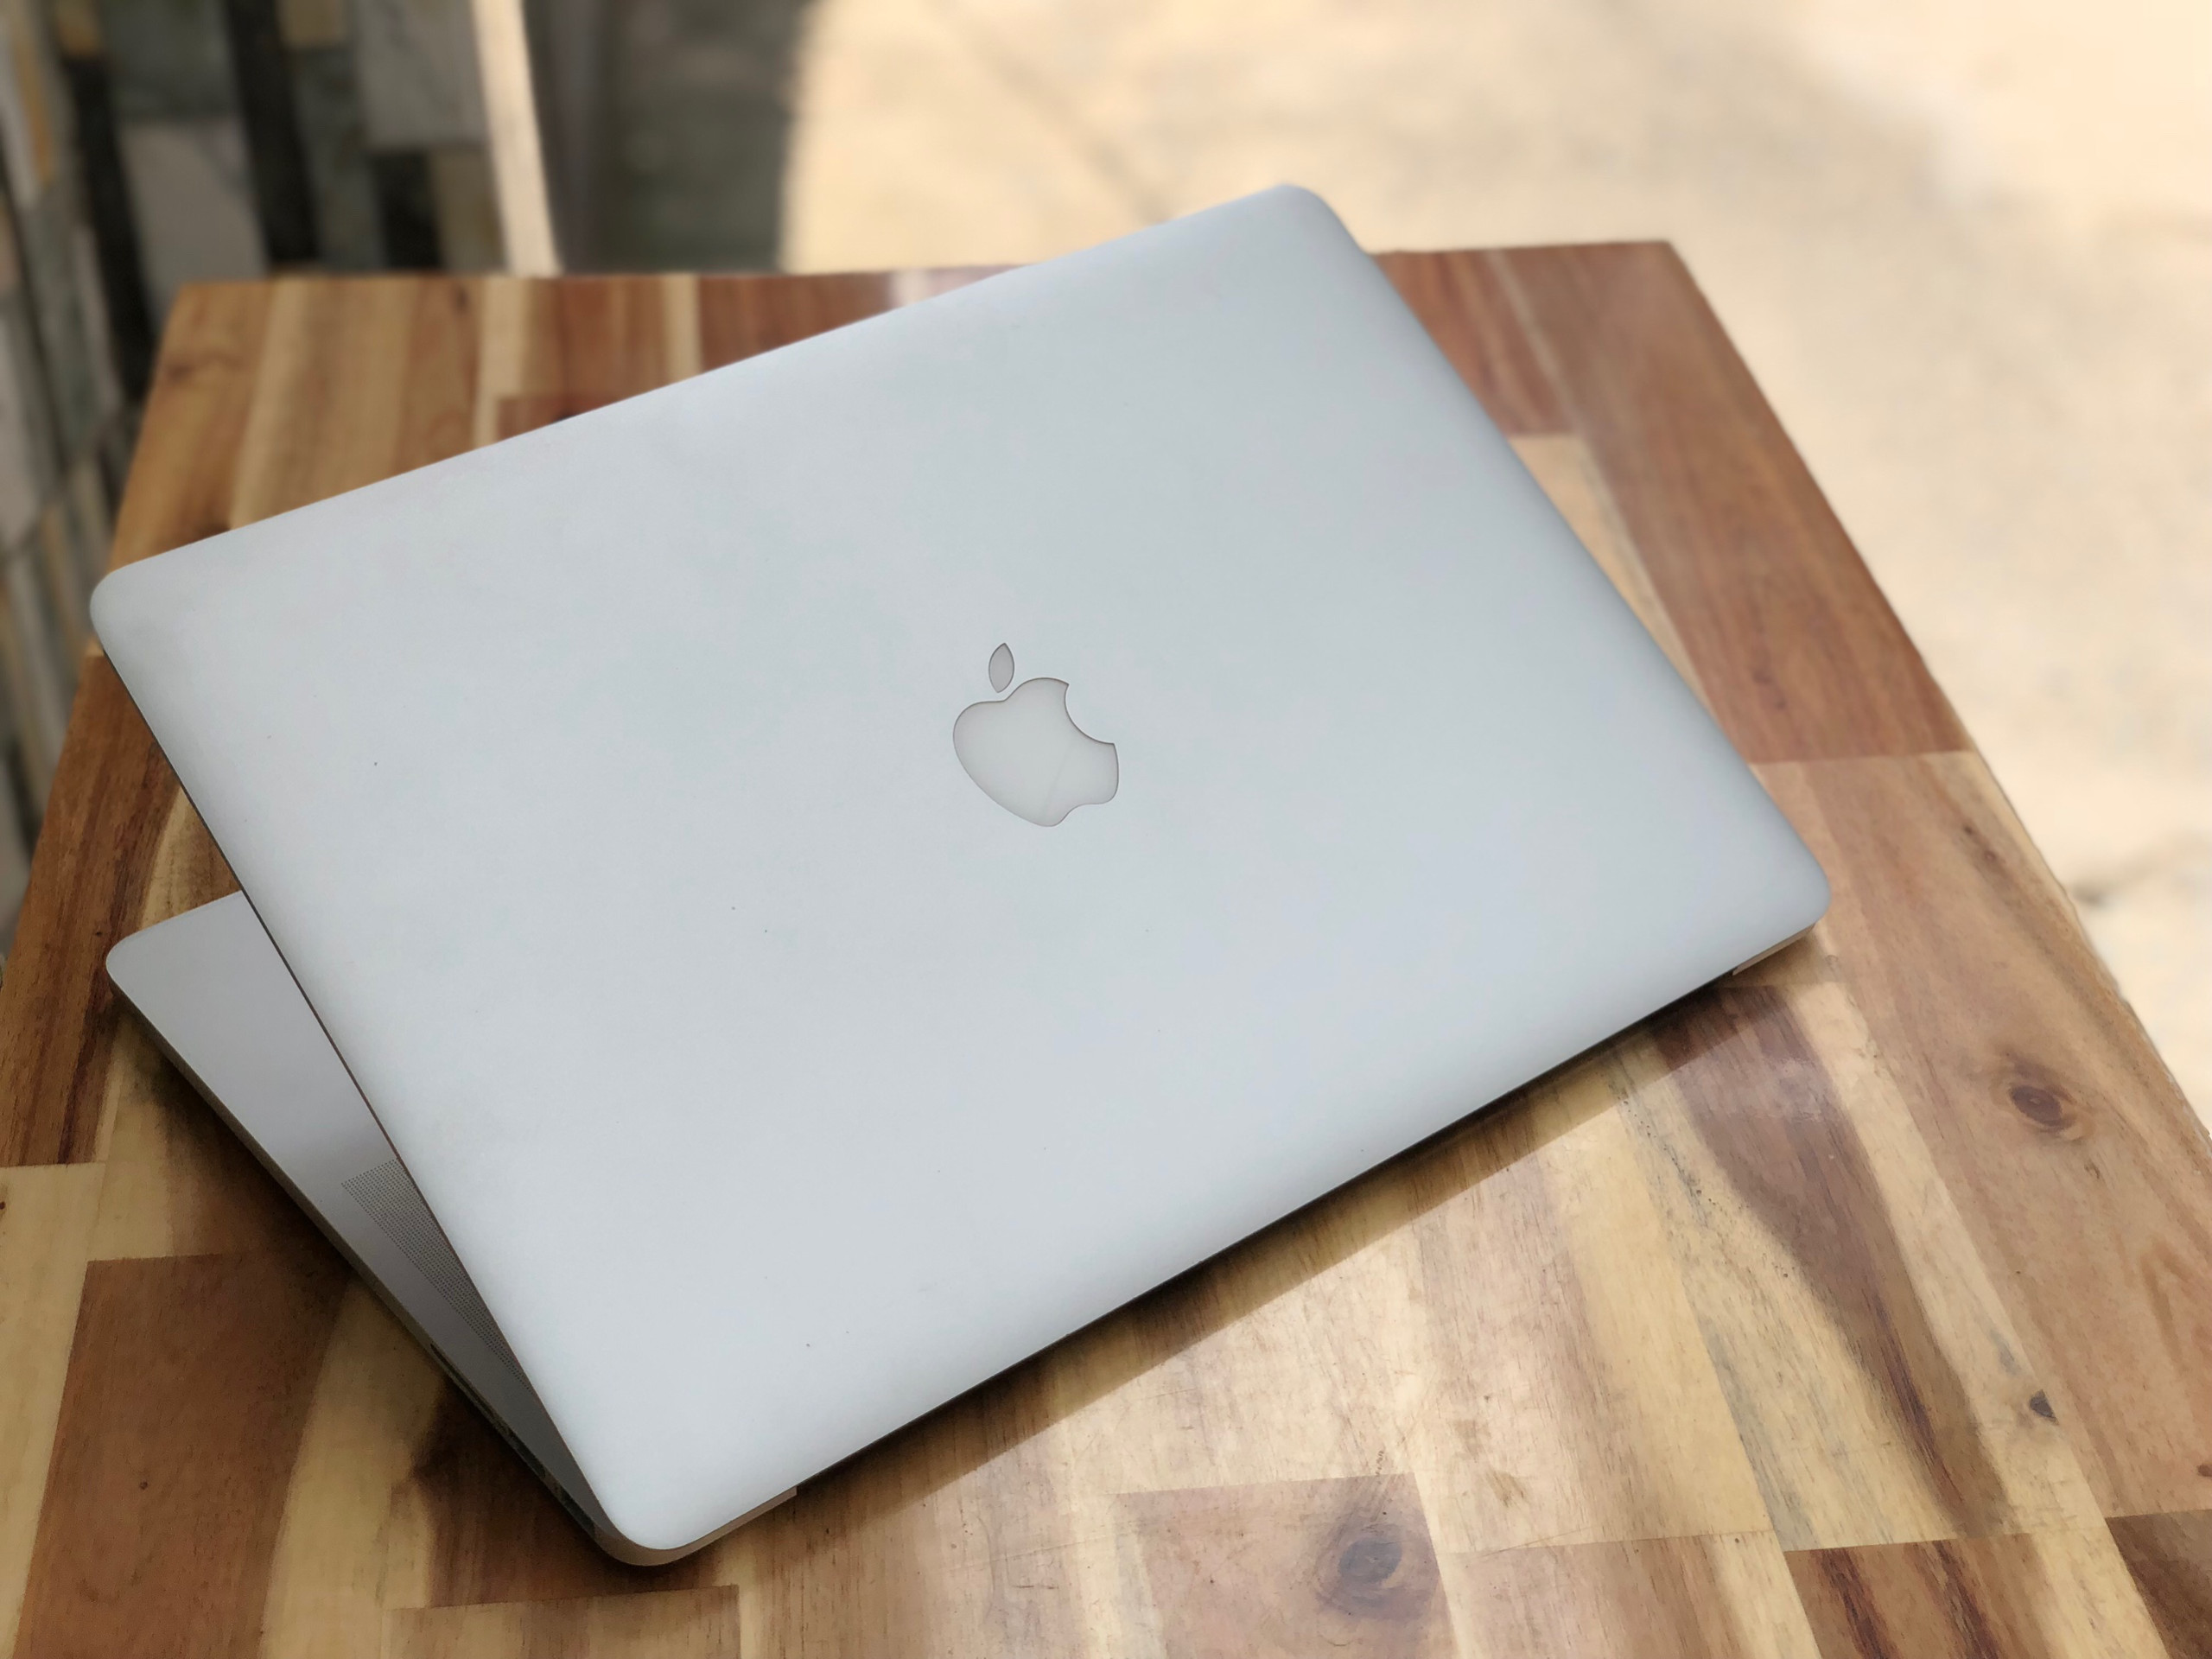 Macbook Pro Retina ME293/ Core i7/ Ram 8G/ SSD/ 15in/ MAC OS/ Retina/ Giá rẻ2